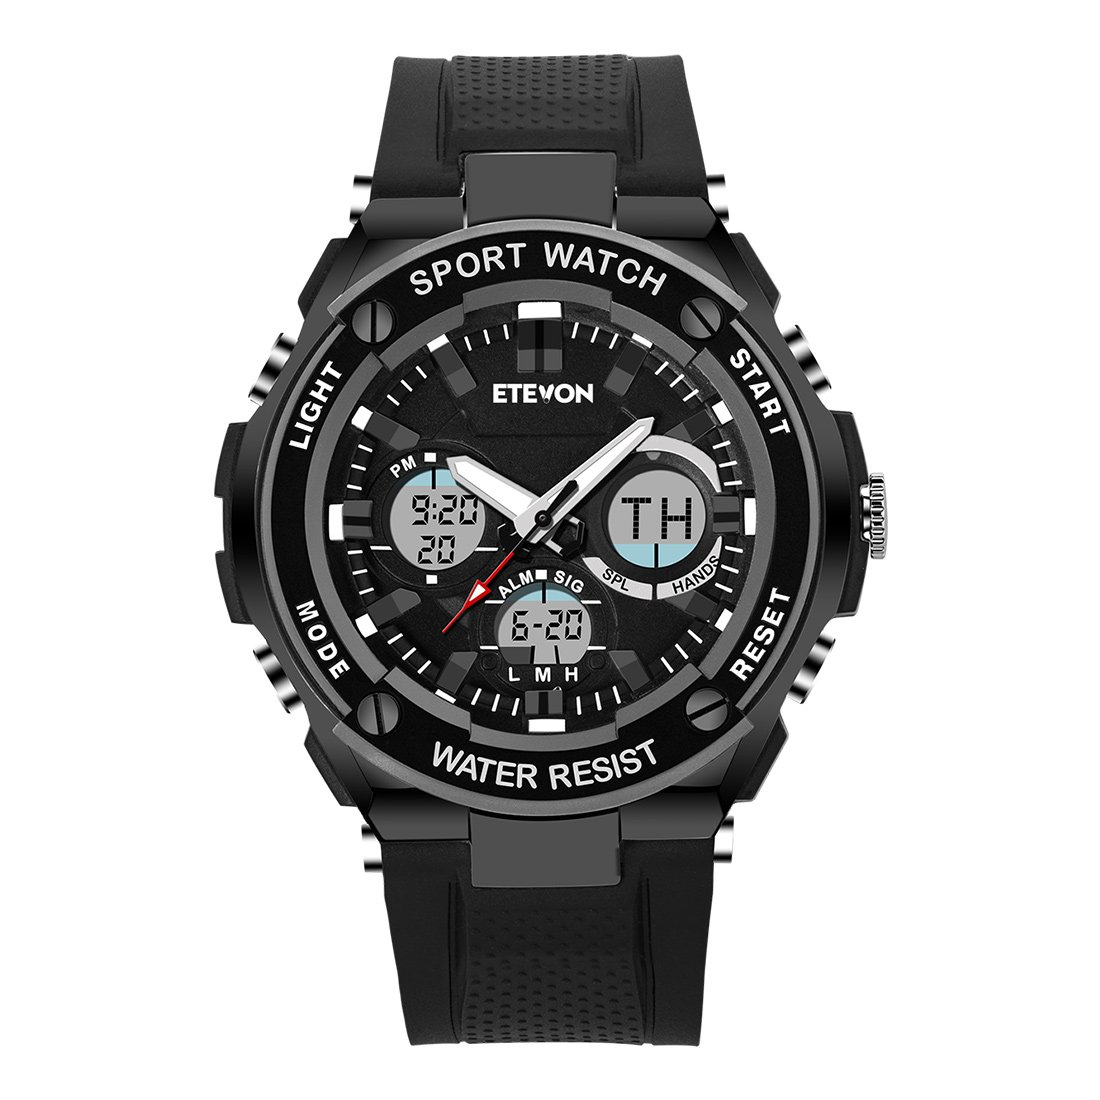 DAGE Mens Digital Watch Quartz Analog with LED Blacklight Waterproof Military Outdoor Sports Watches